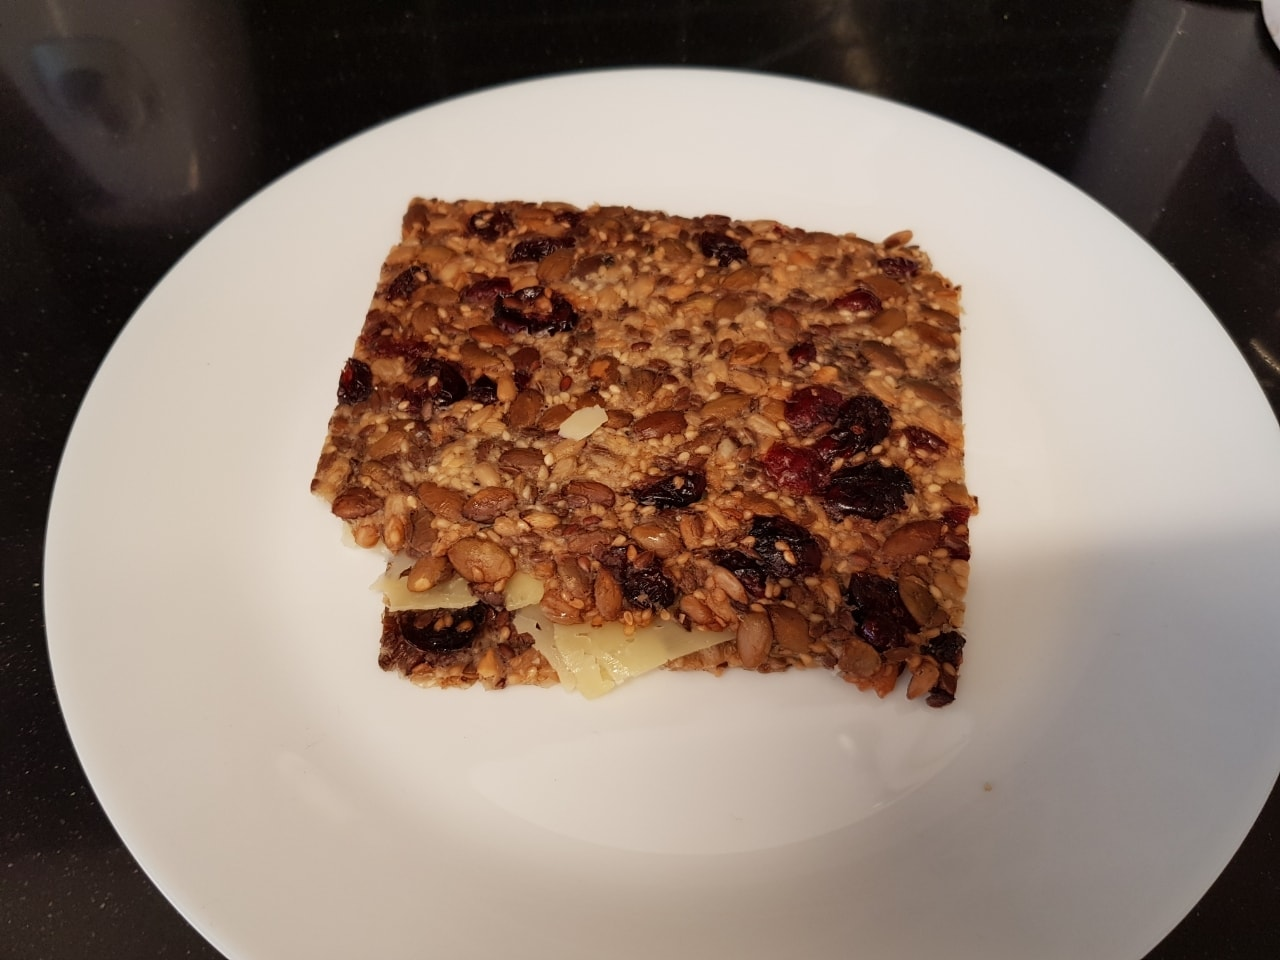 Crisp bread with seeds and cranberries from Il Caffe Hornstull